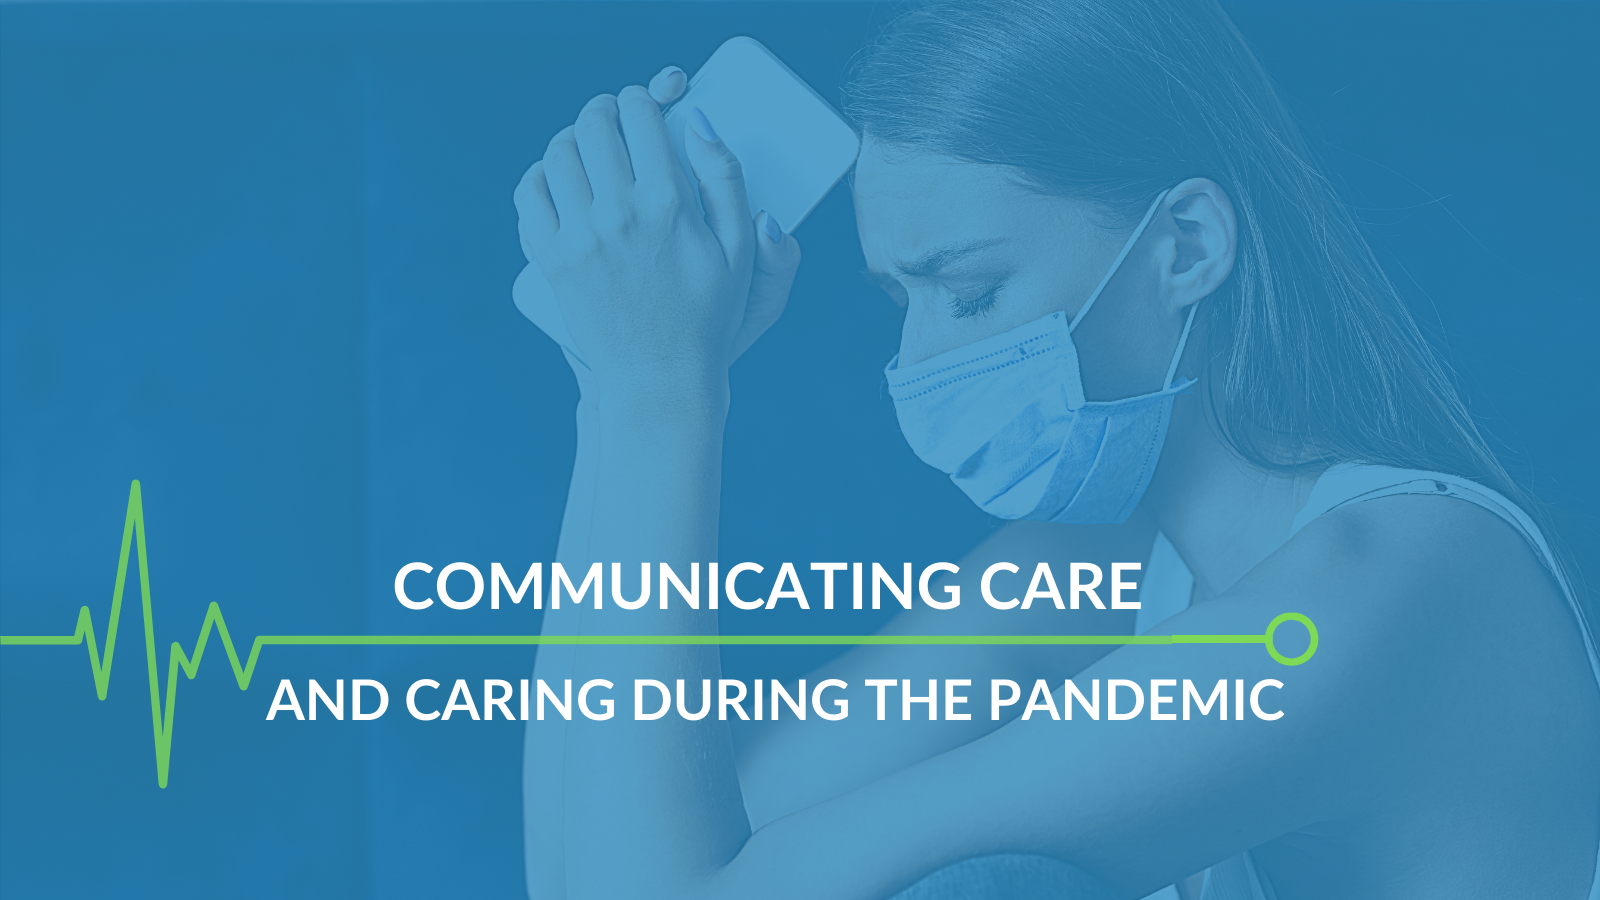 Communicating Care and Caring During the Pandemic